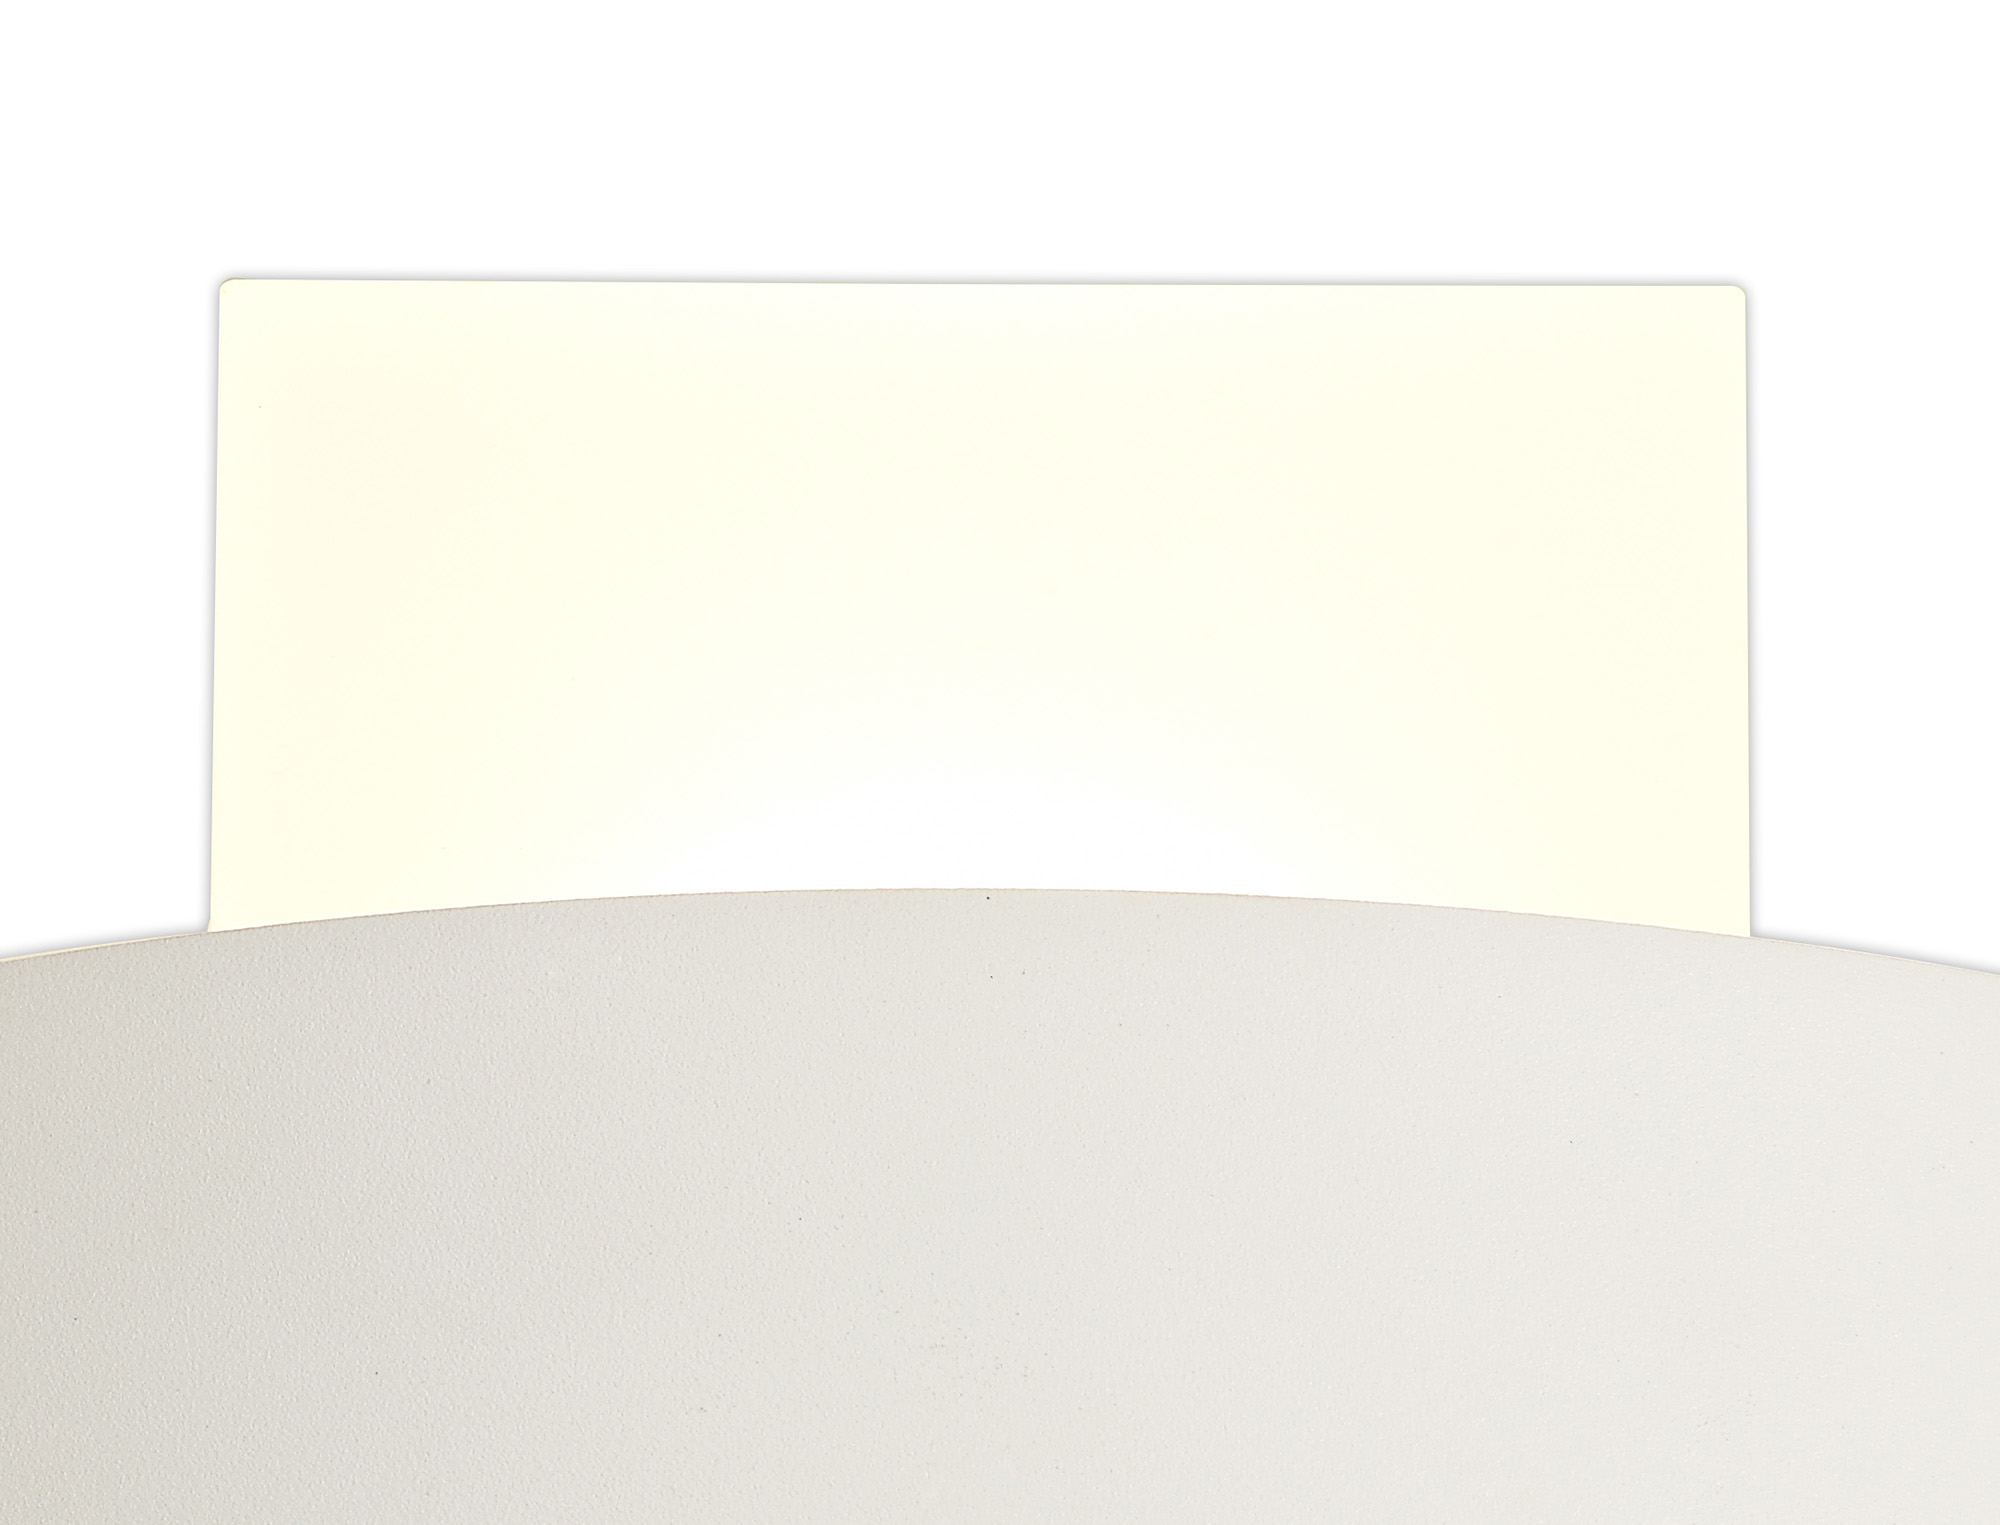 Up & Downward Lighting Wall Lamp, 2 x 5W LED, 3000K, 850lm, IP54, Sand White, 3yrs Warranty